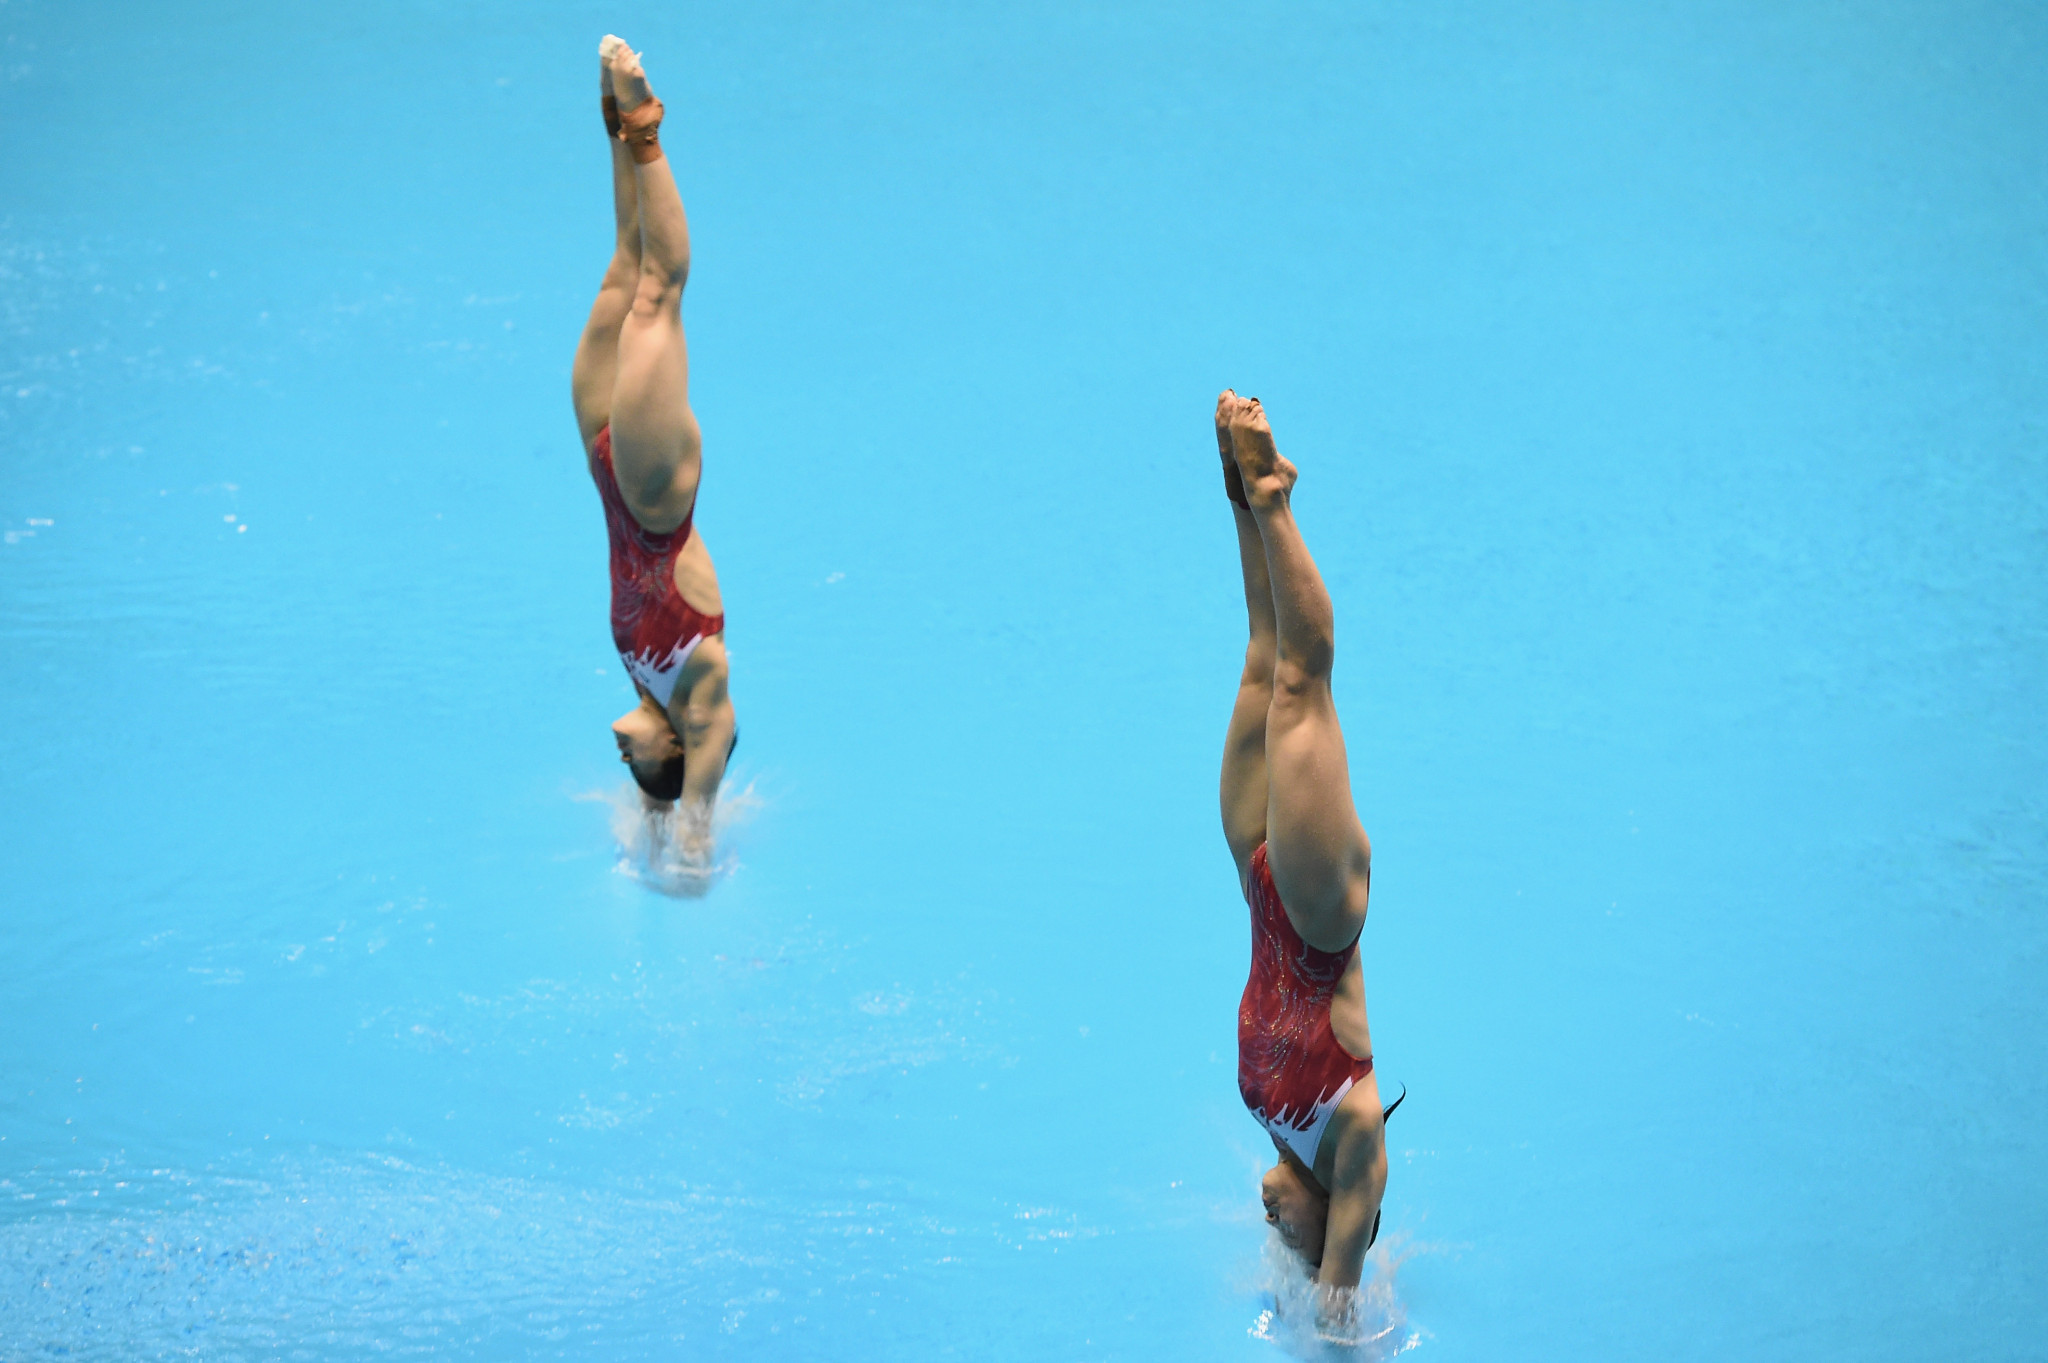 China's Shi Tingmao and Wang Han won the women's 3m synchronised event in Sagamihara ©Getty Images